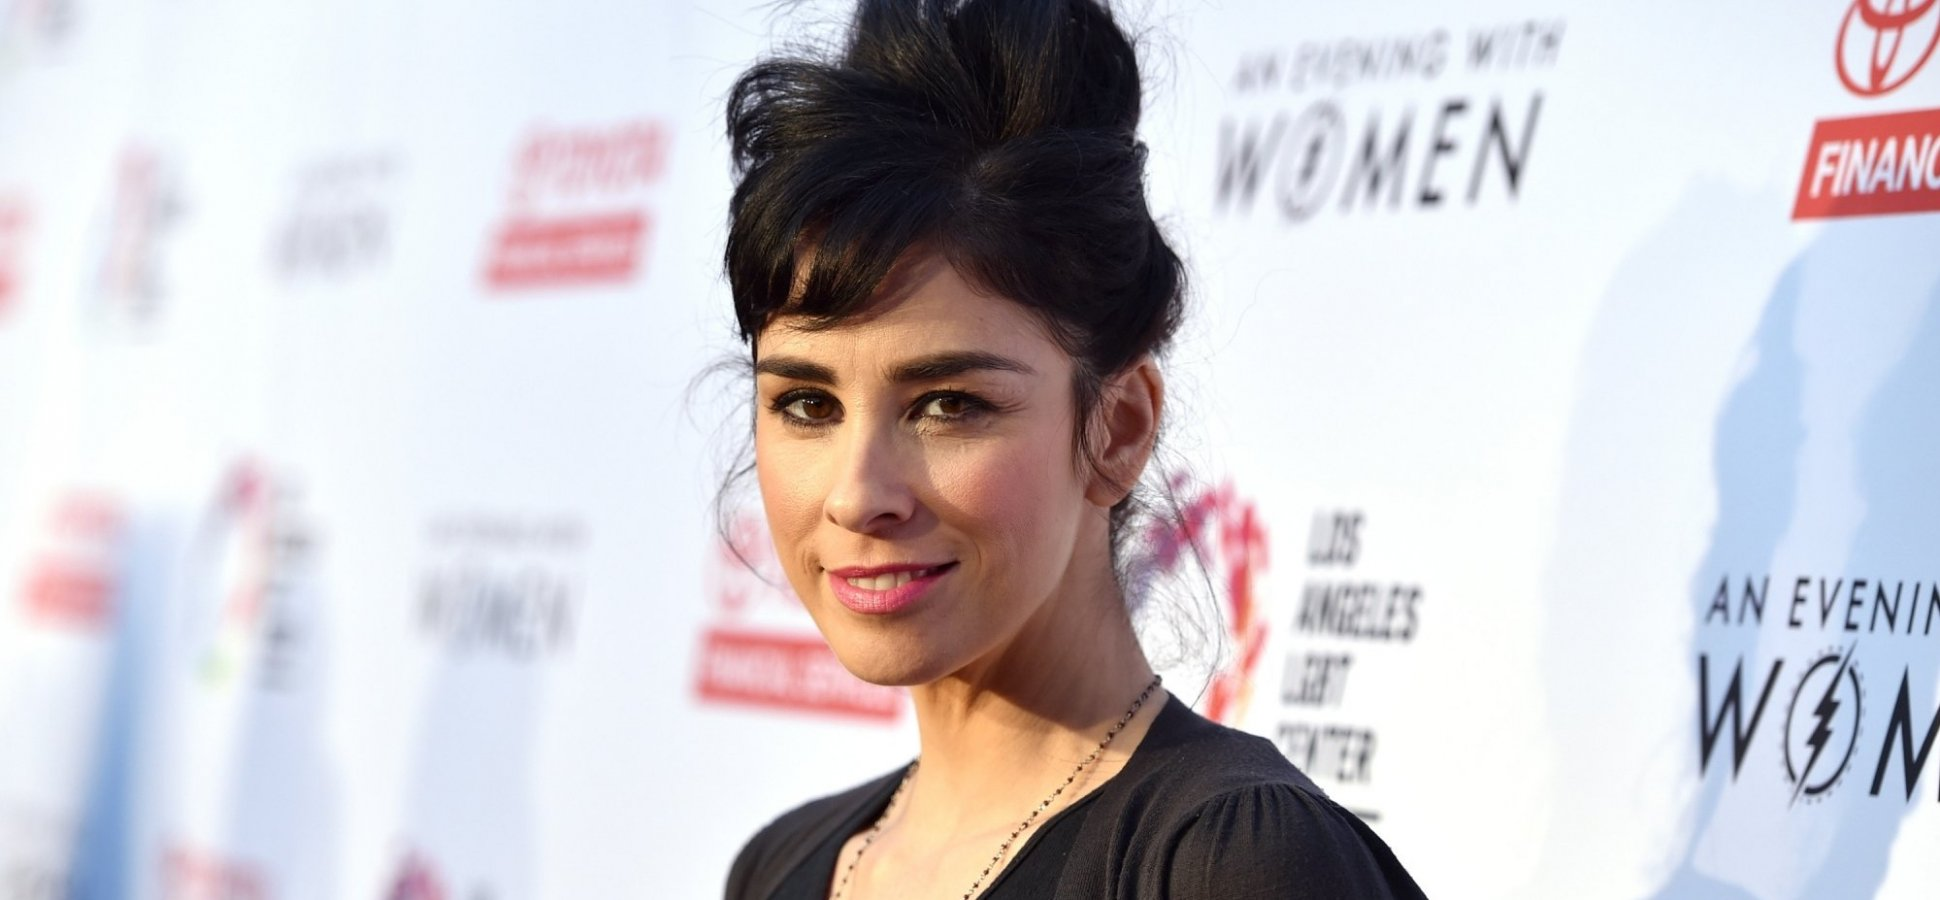 Sarah Silverman's Compassionate Response to a Hateful Tweet Is a Master Class in Emotional Intelligence